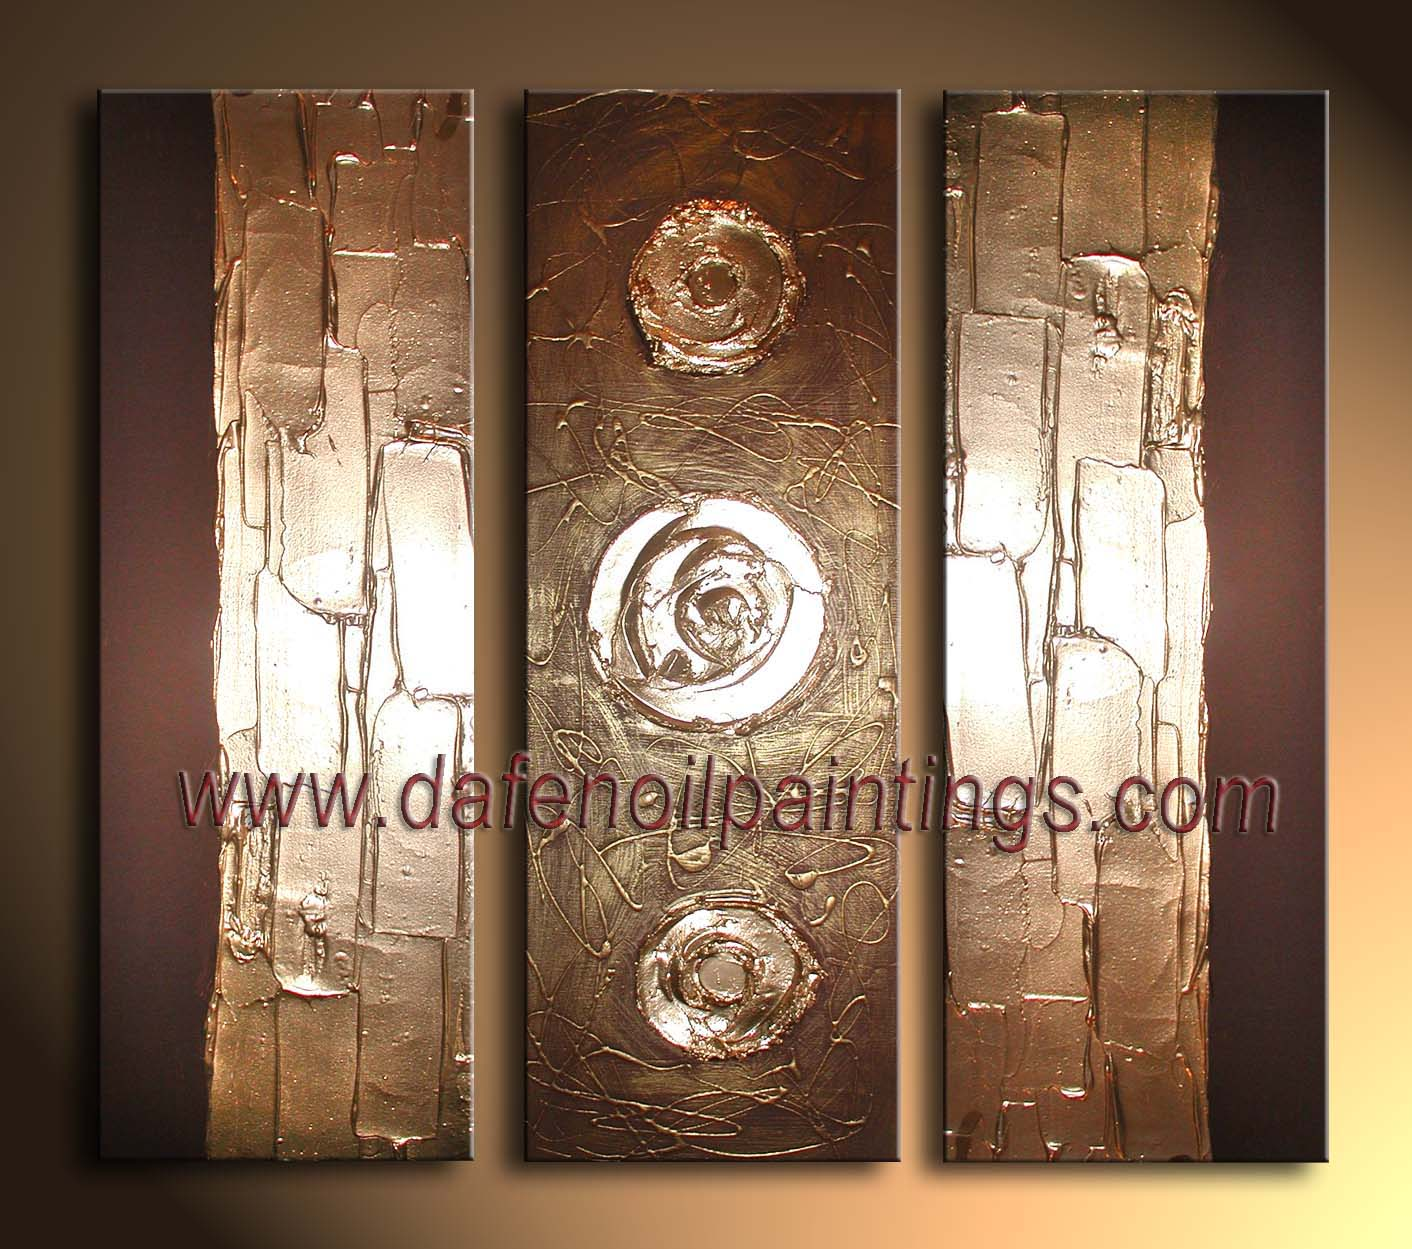 Dafen Oil Painting on canvas abstract -set331 [set331] - $68.00 ...